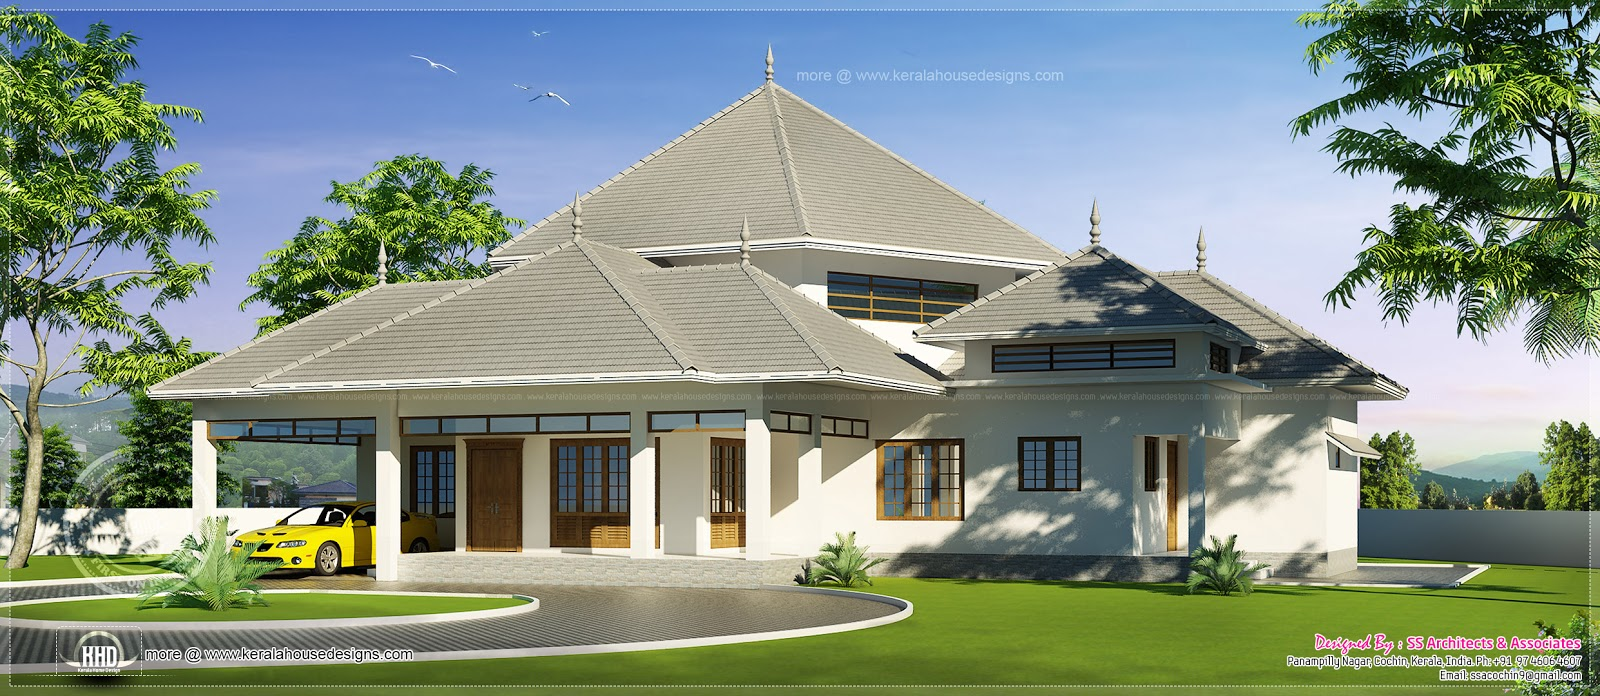 Kerala Style Modern Roof House In 2600 Home